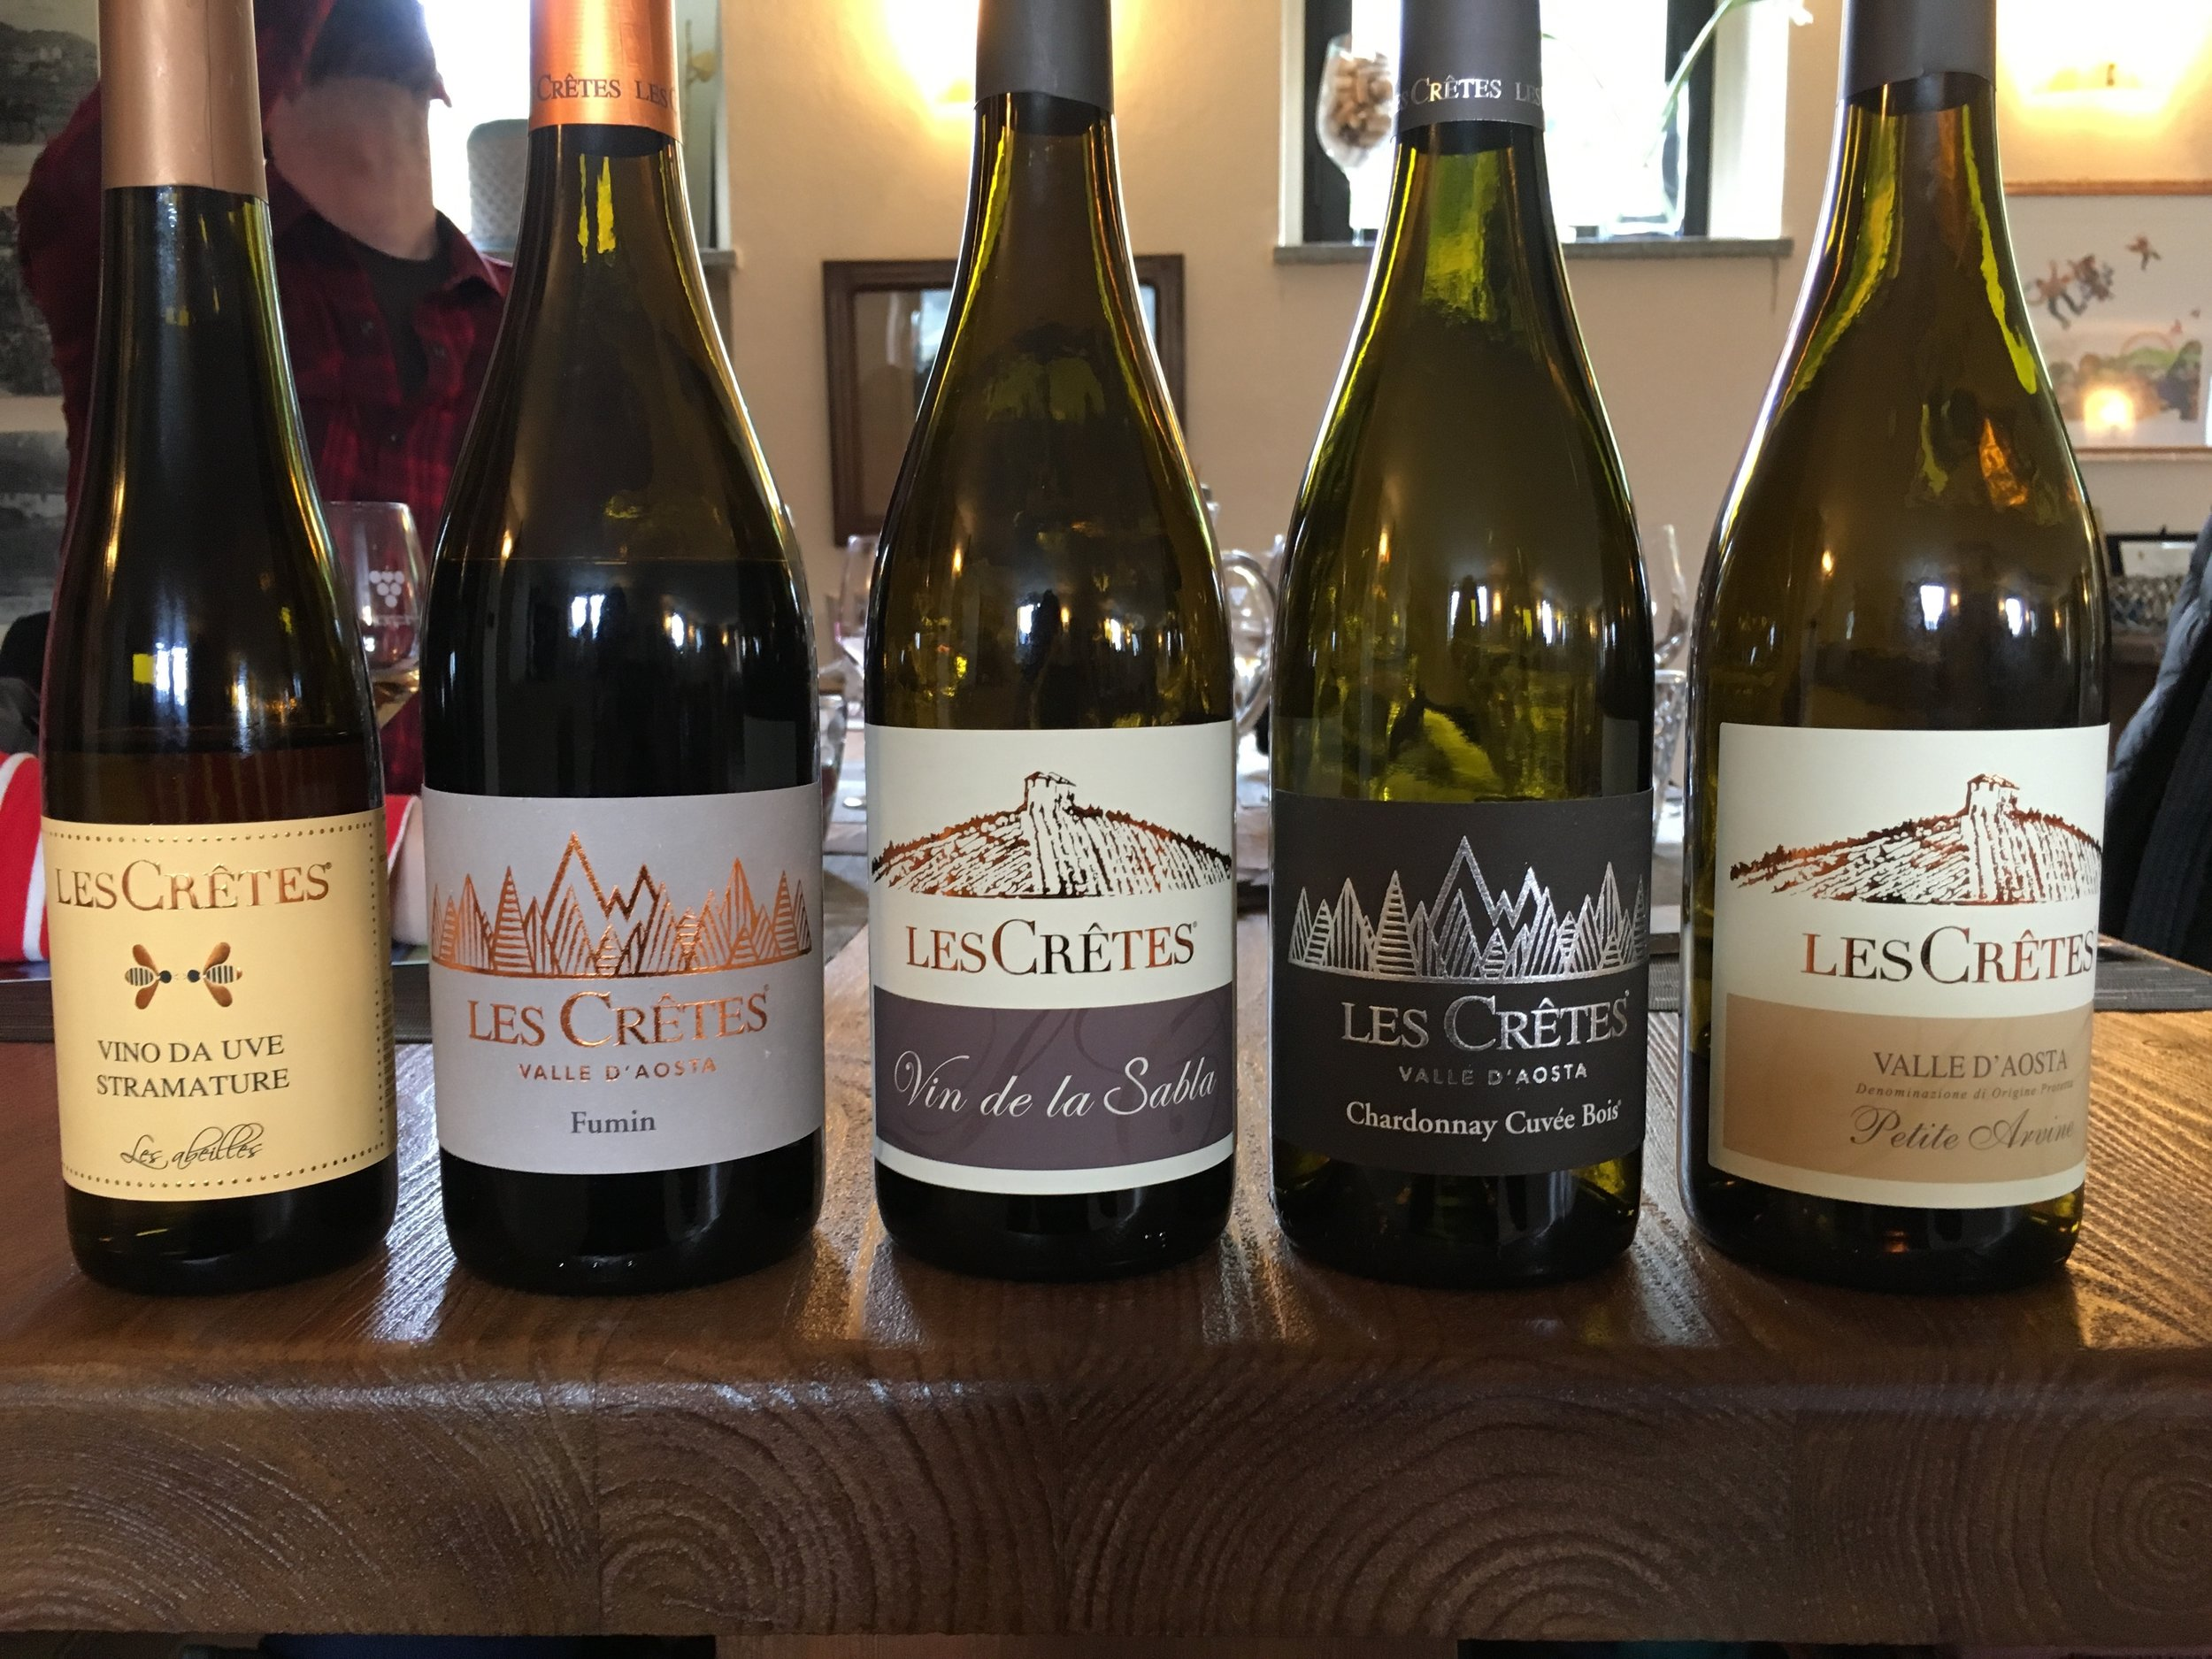 The wines of Les Cretes in the Aosta Valley of NW Italy.